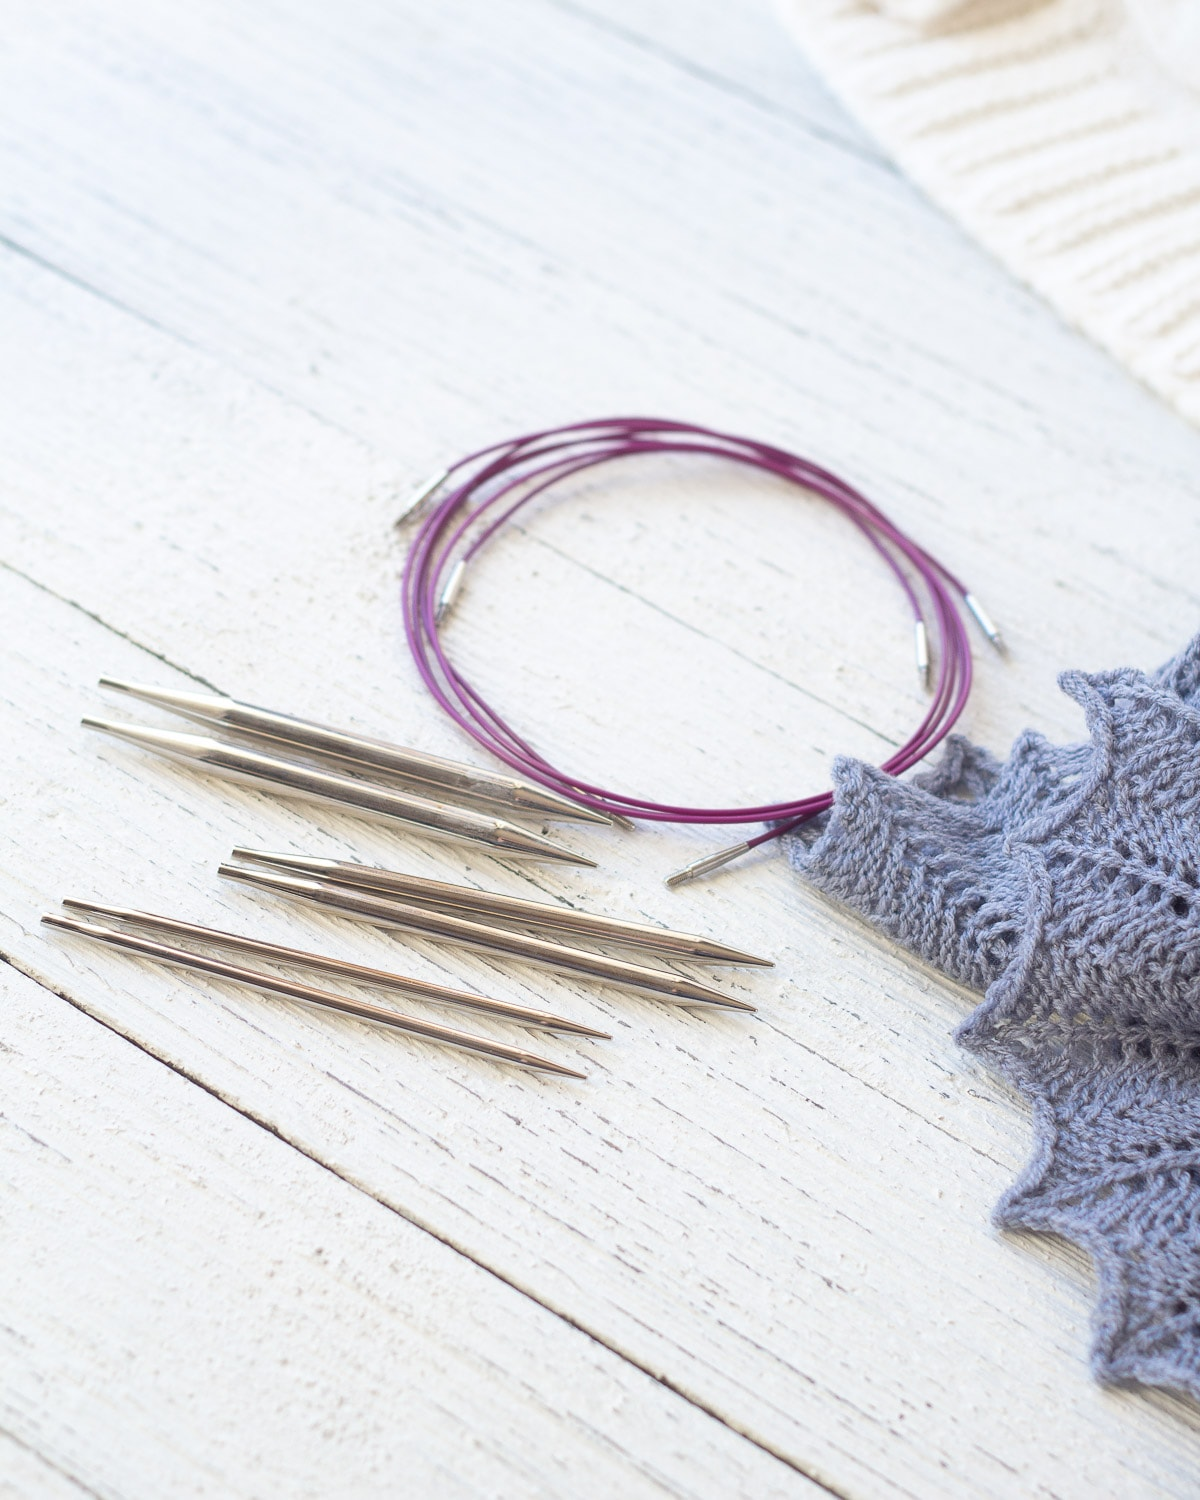 Gift idea for new knitters: Knit Picks Nickel Interchangeable Knitting Needle Set on a wooden surface.